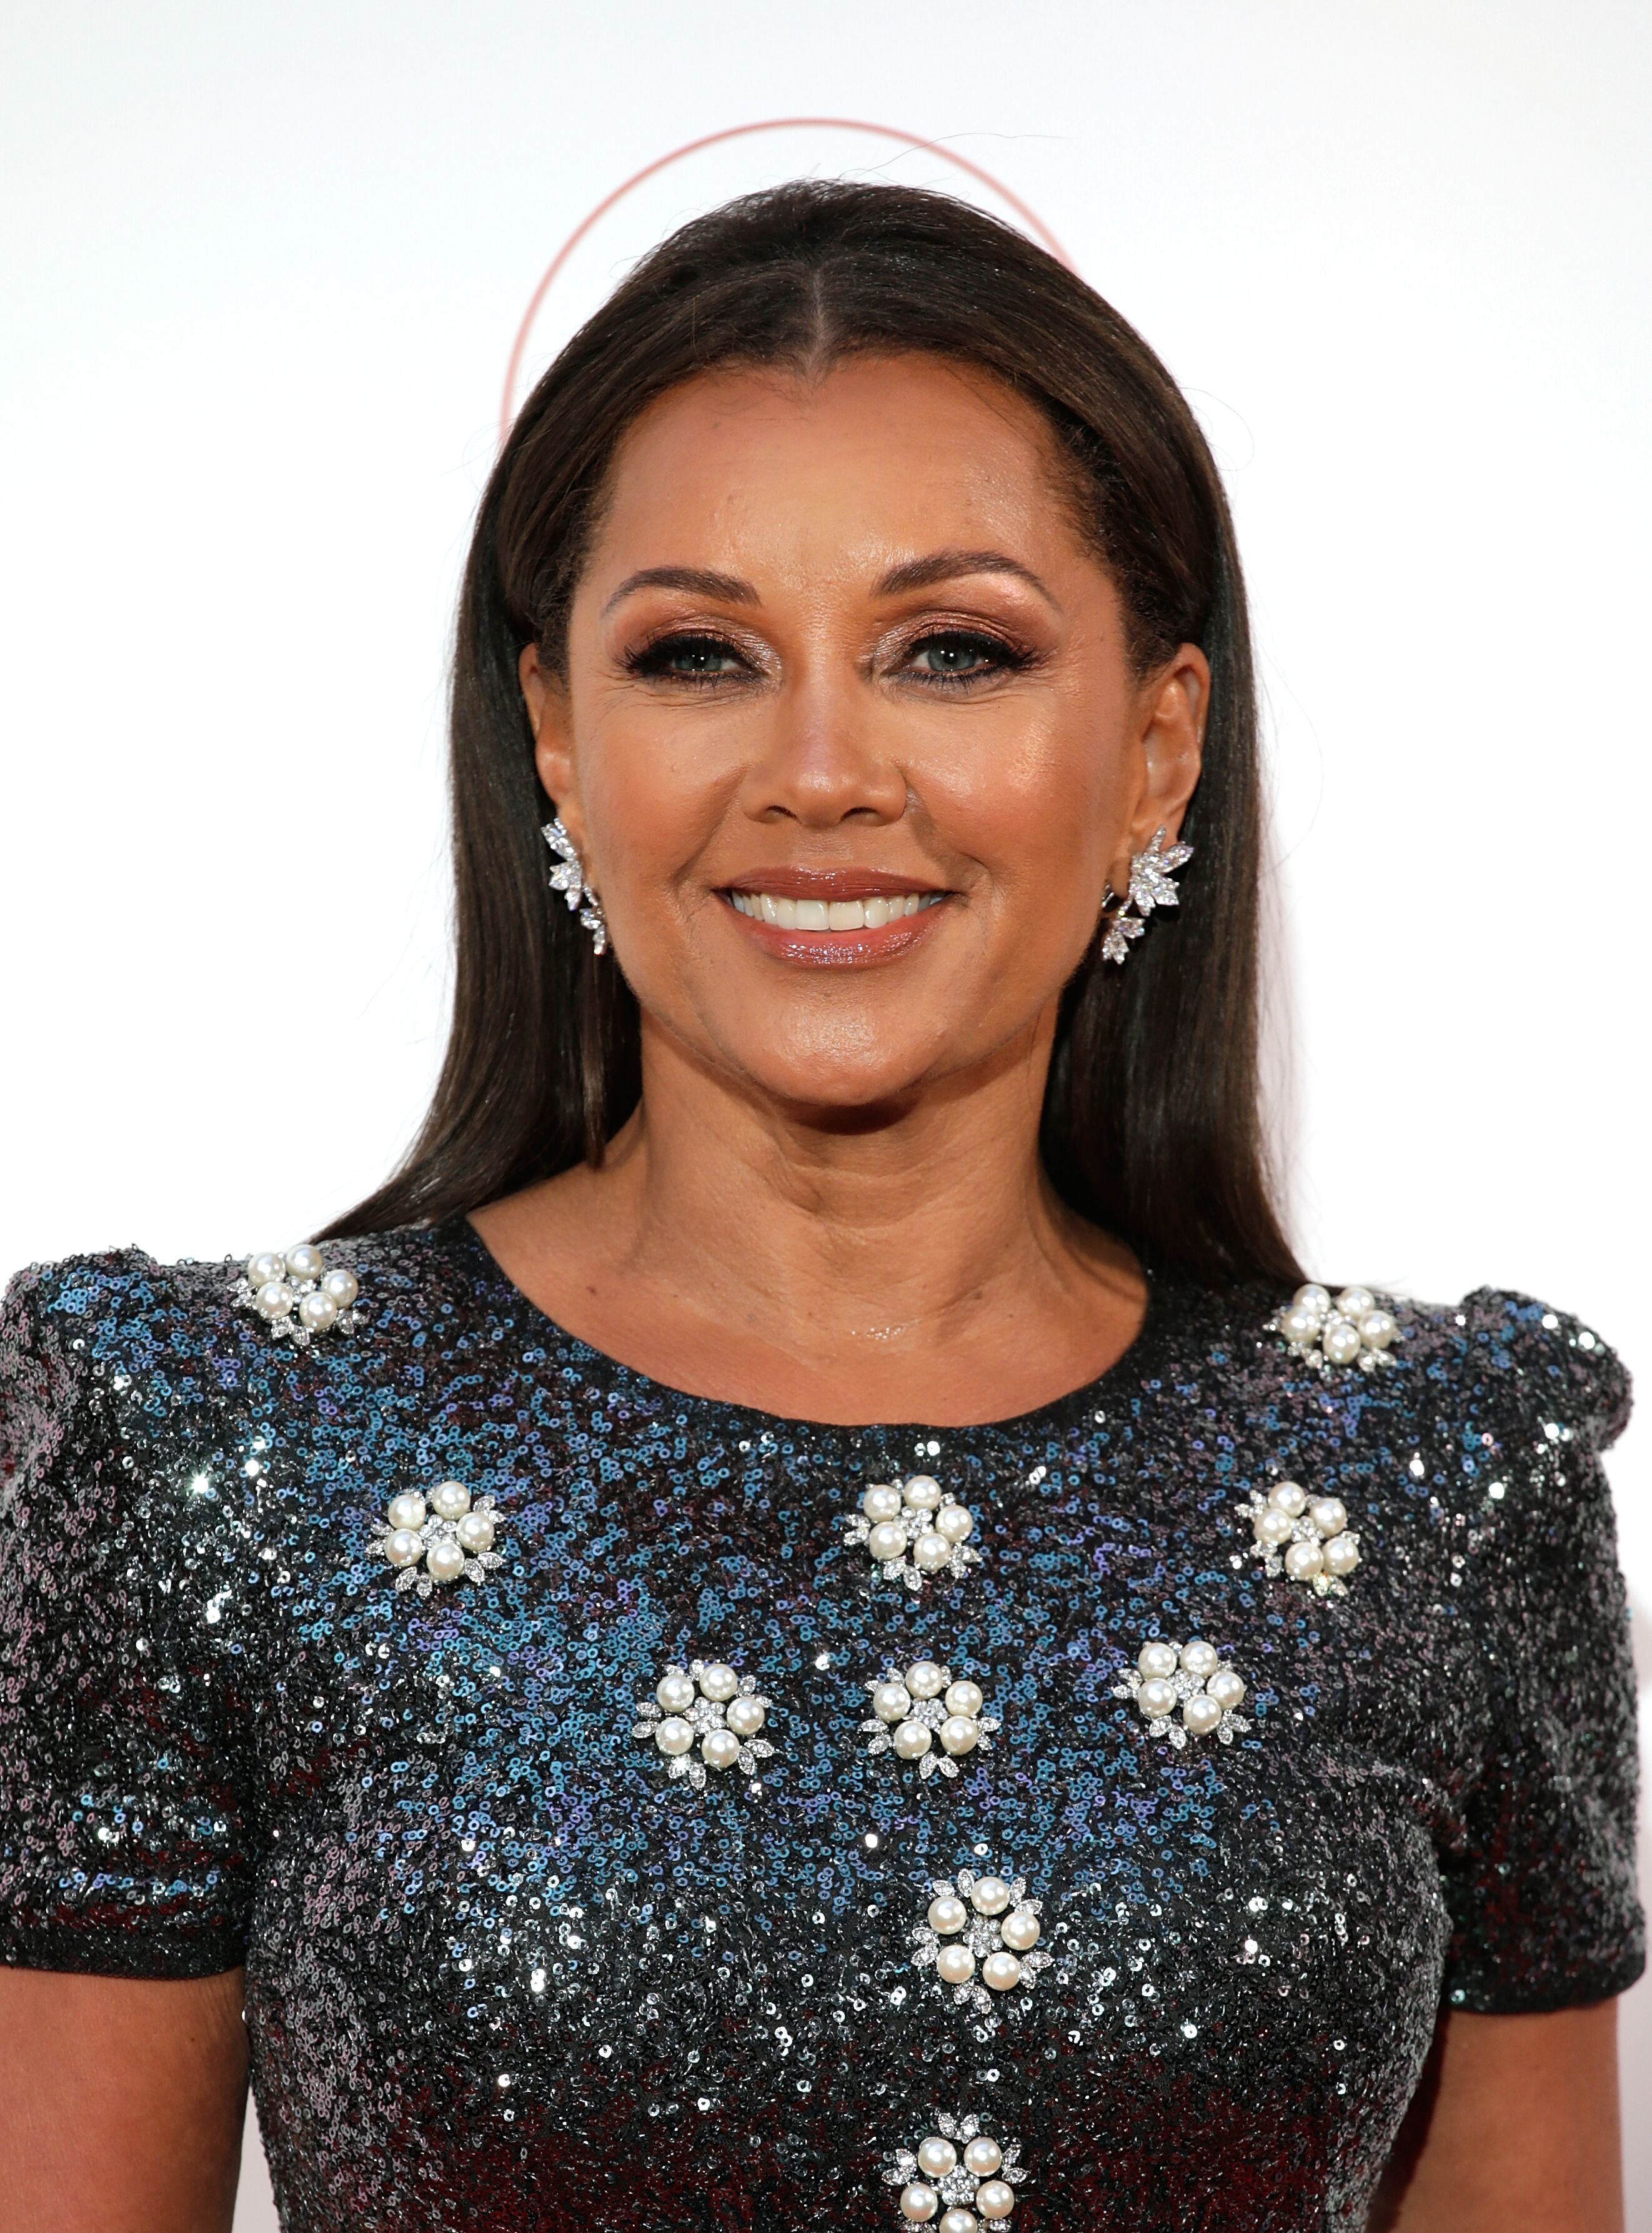 Vanessa Williams at The Nelson Mandela Global Gift Gala in London in 2018 | Source: Getty Images